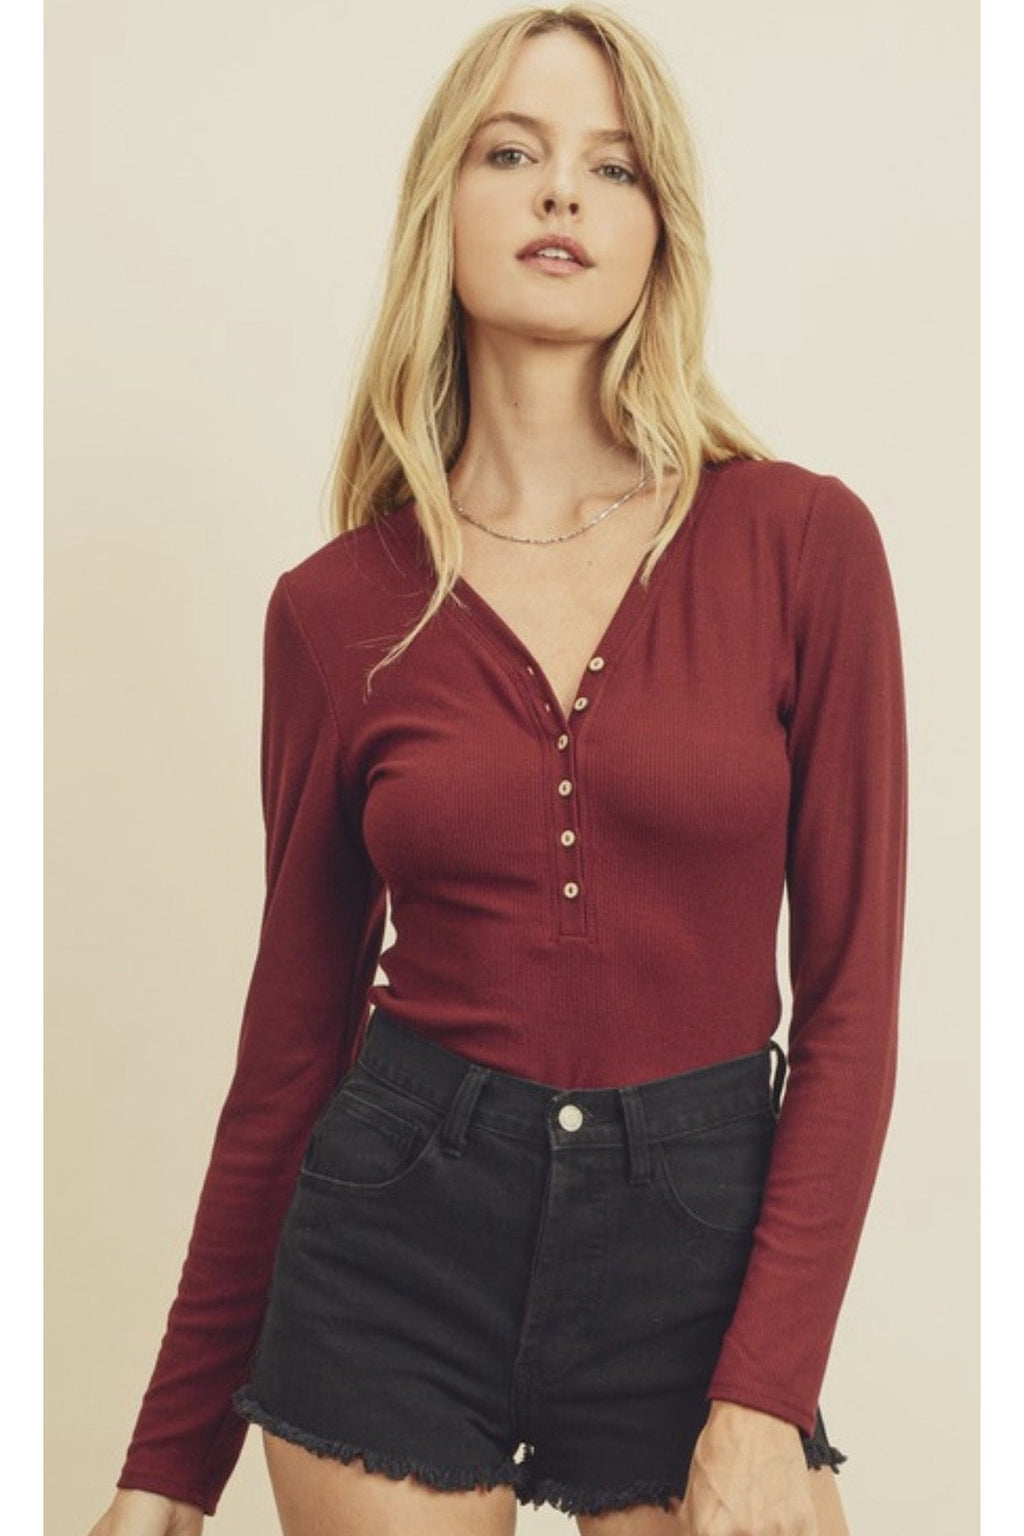 Bella Henley Bodysuit in Wine